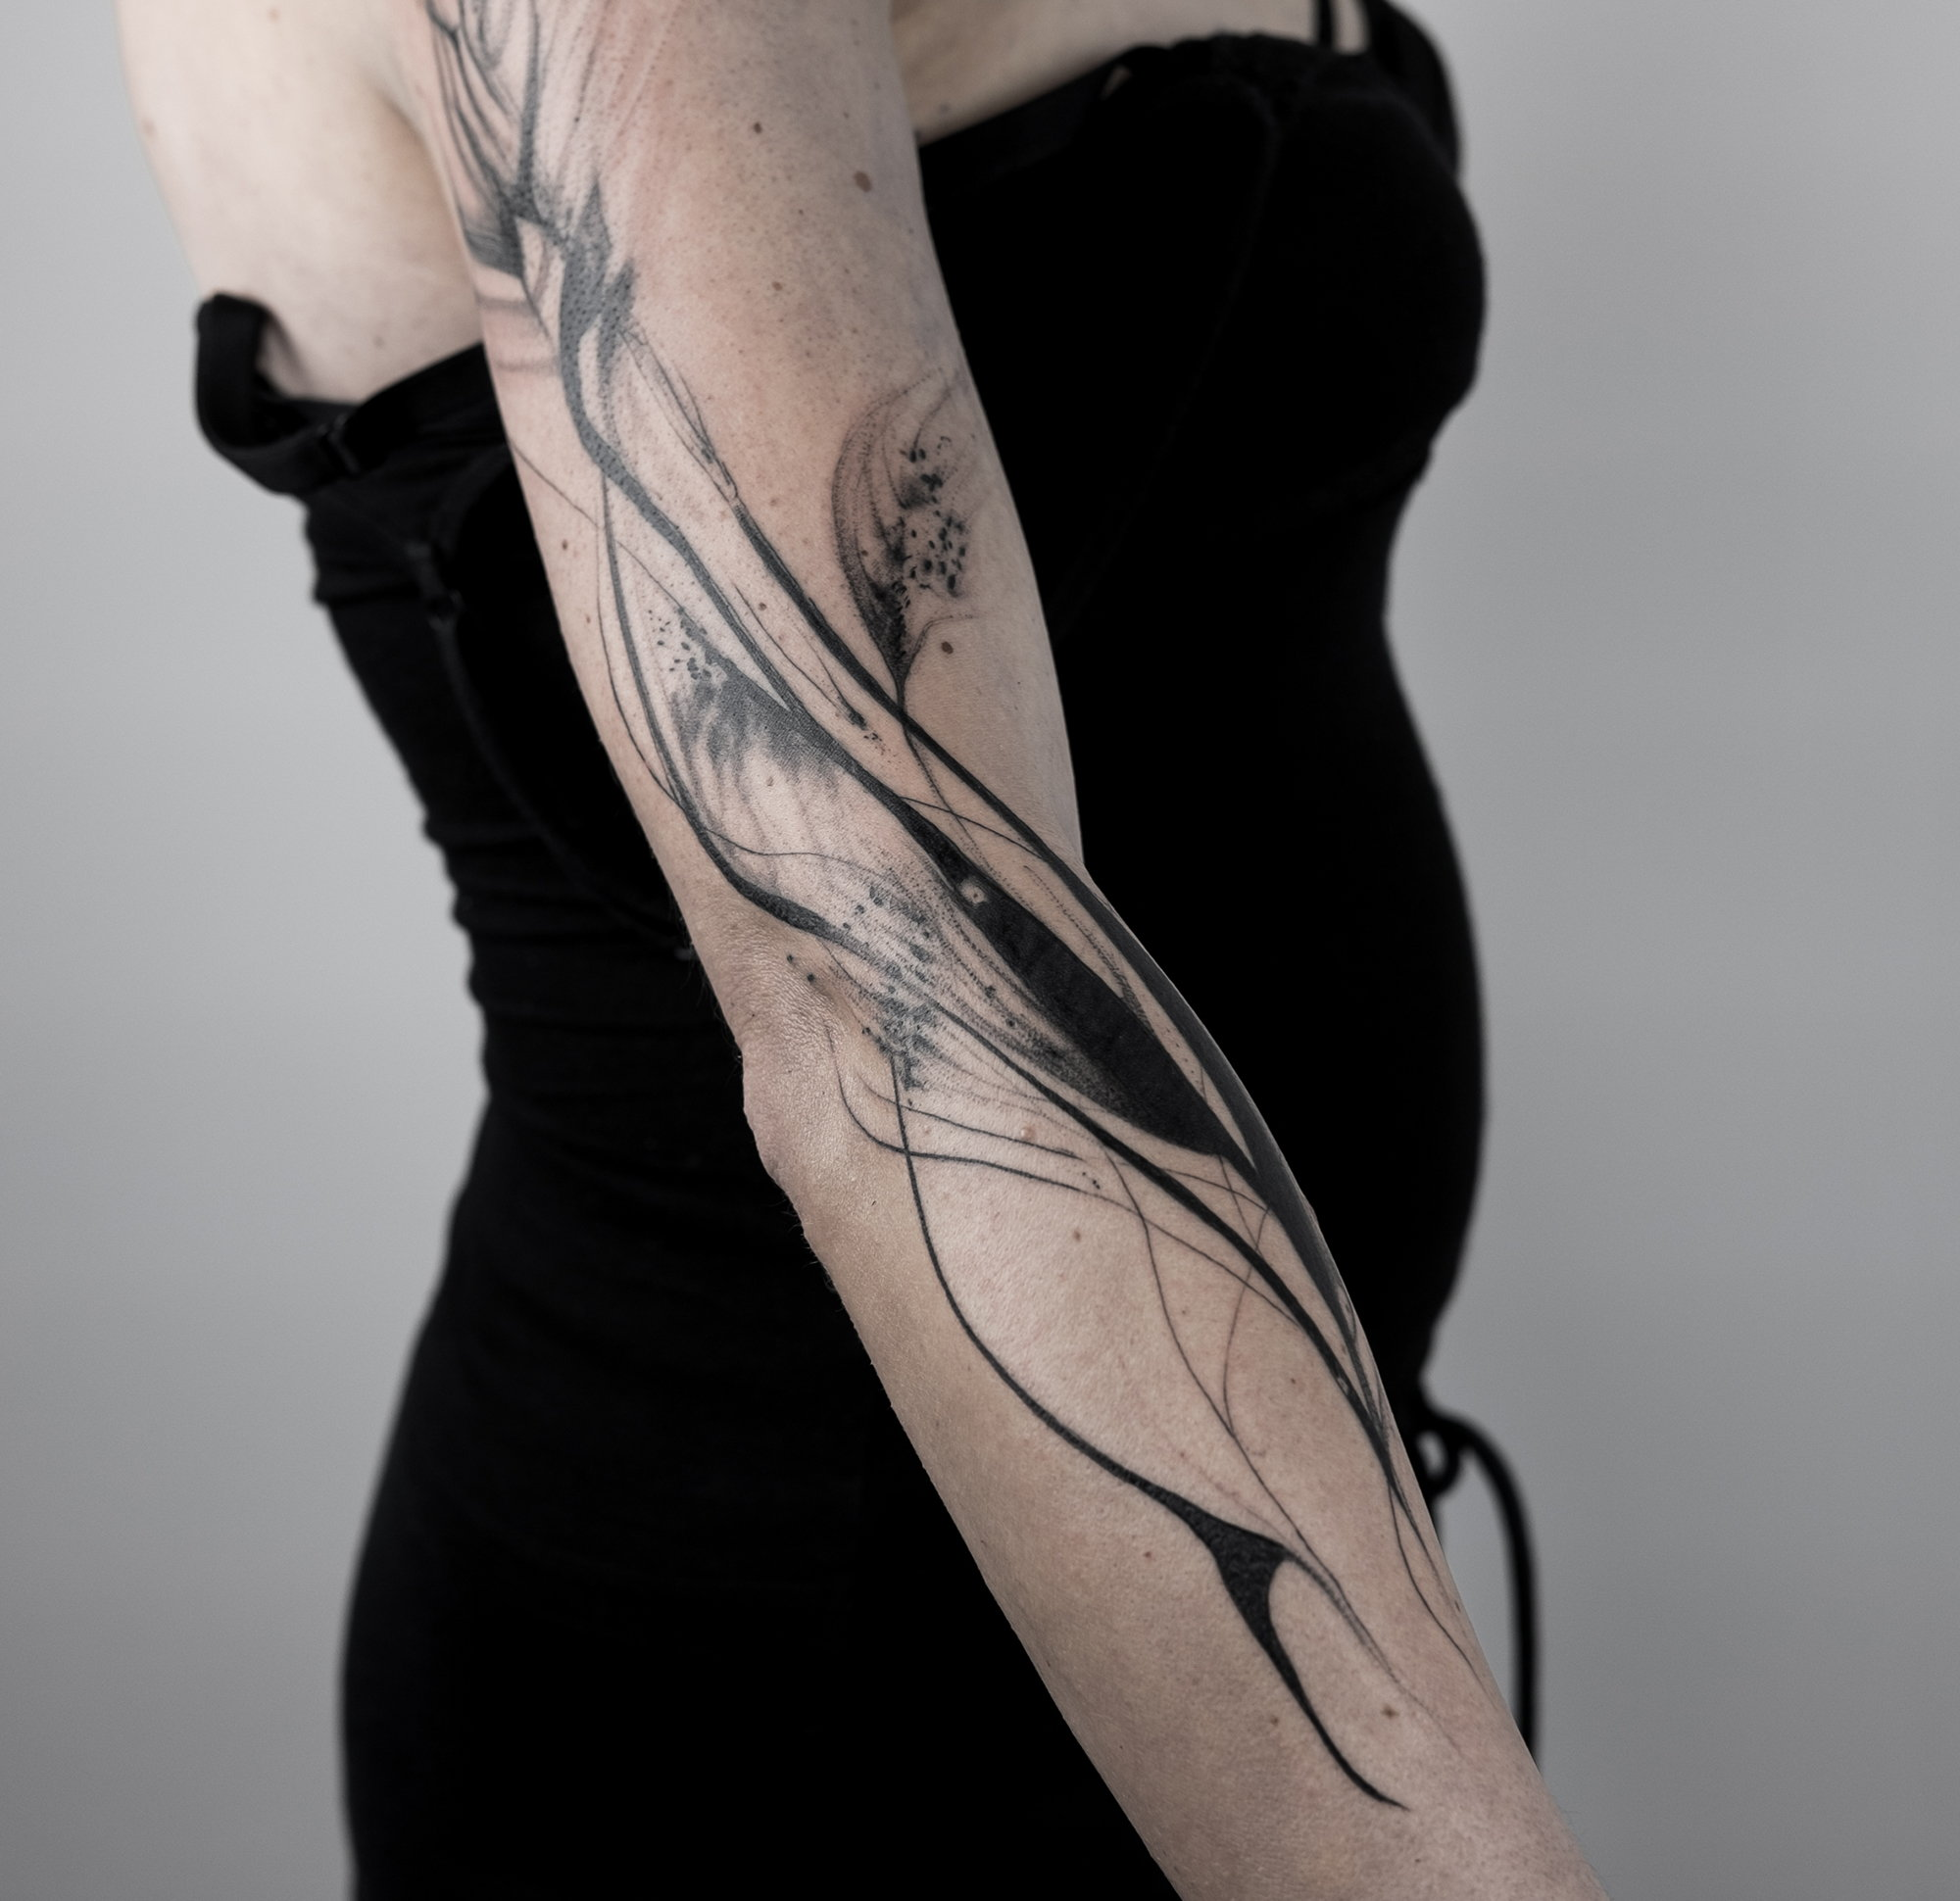 abstract, avant-garde tattoo on sleeve